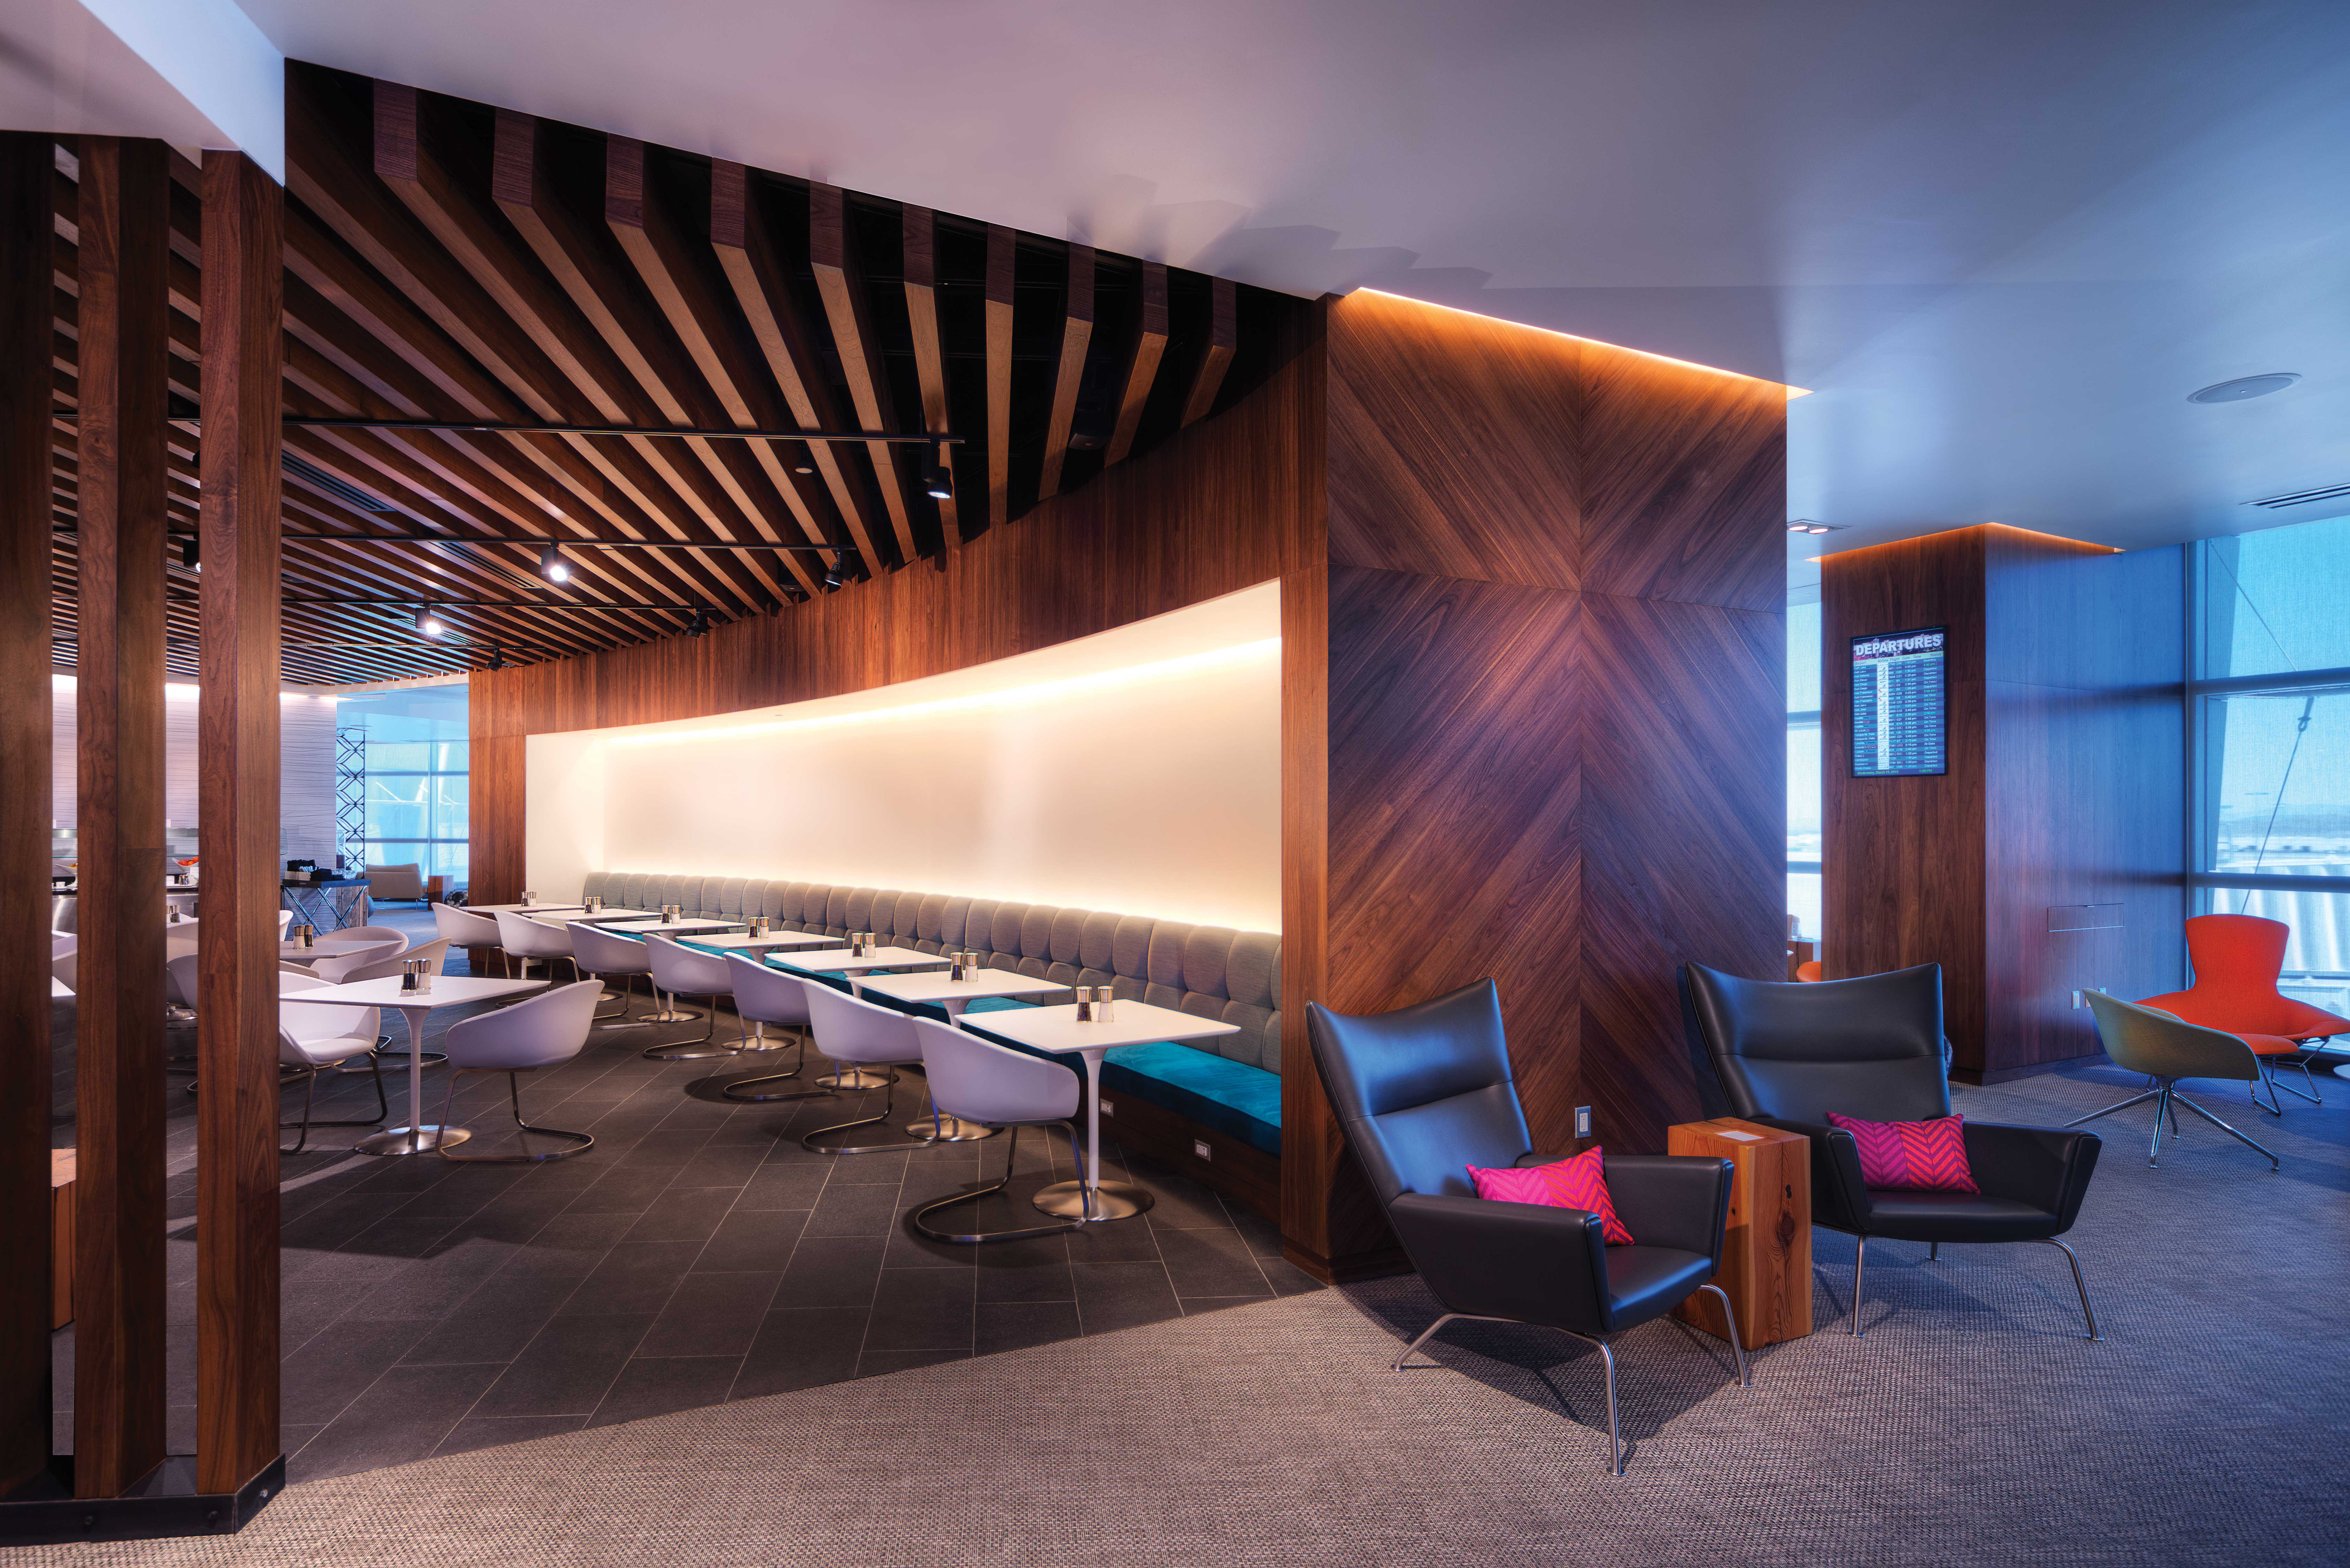 American Express Centurion Lounge Interiors Las Vegas for Big Red Rooster